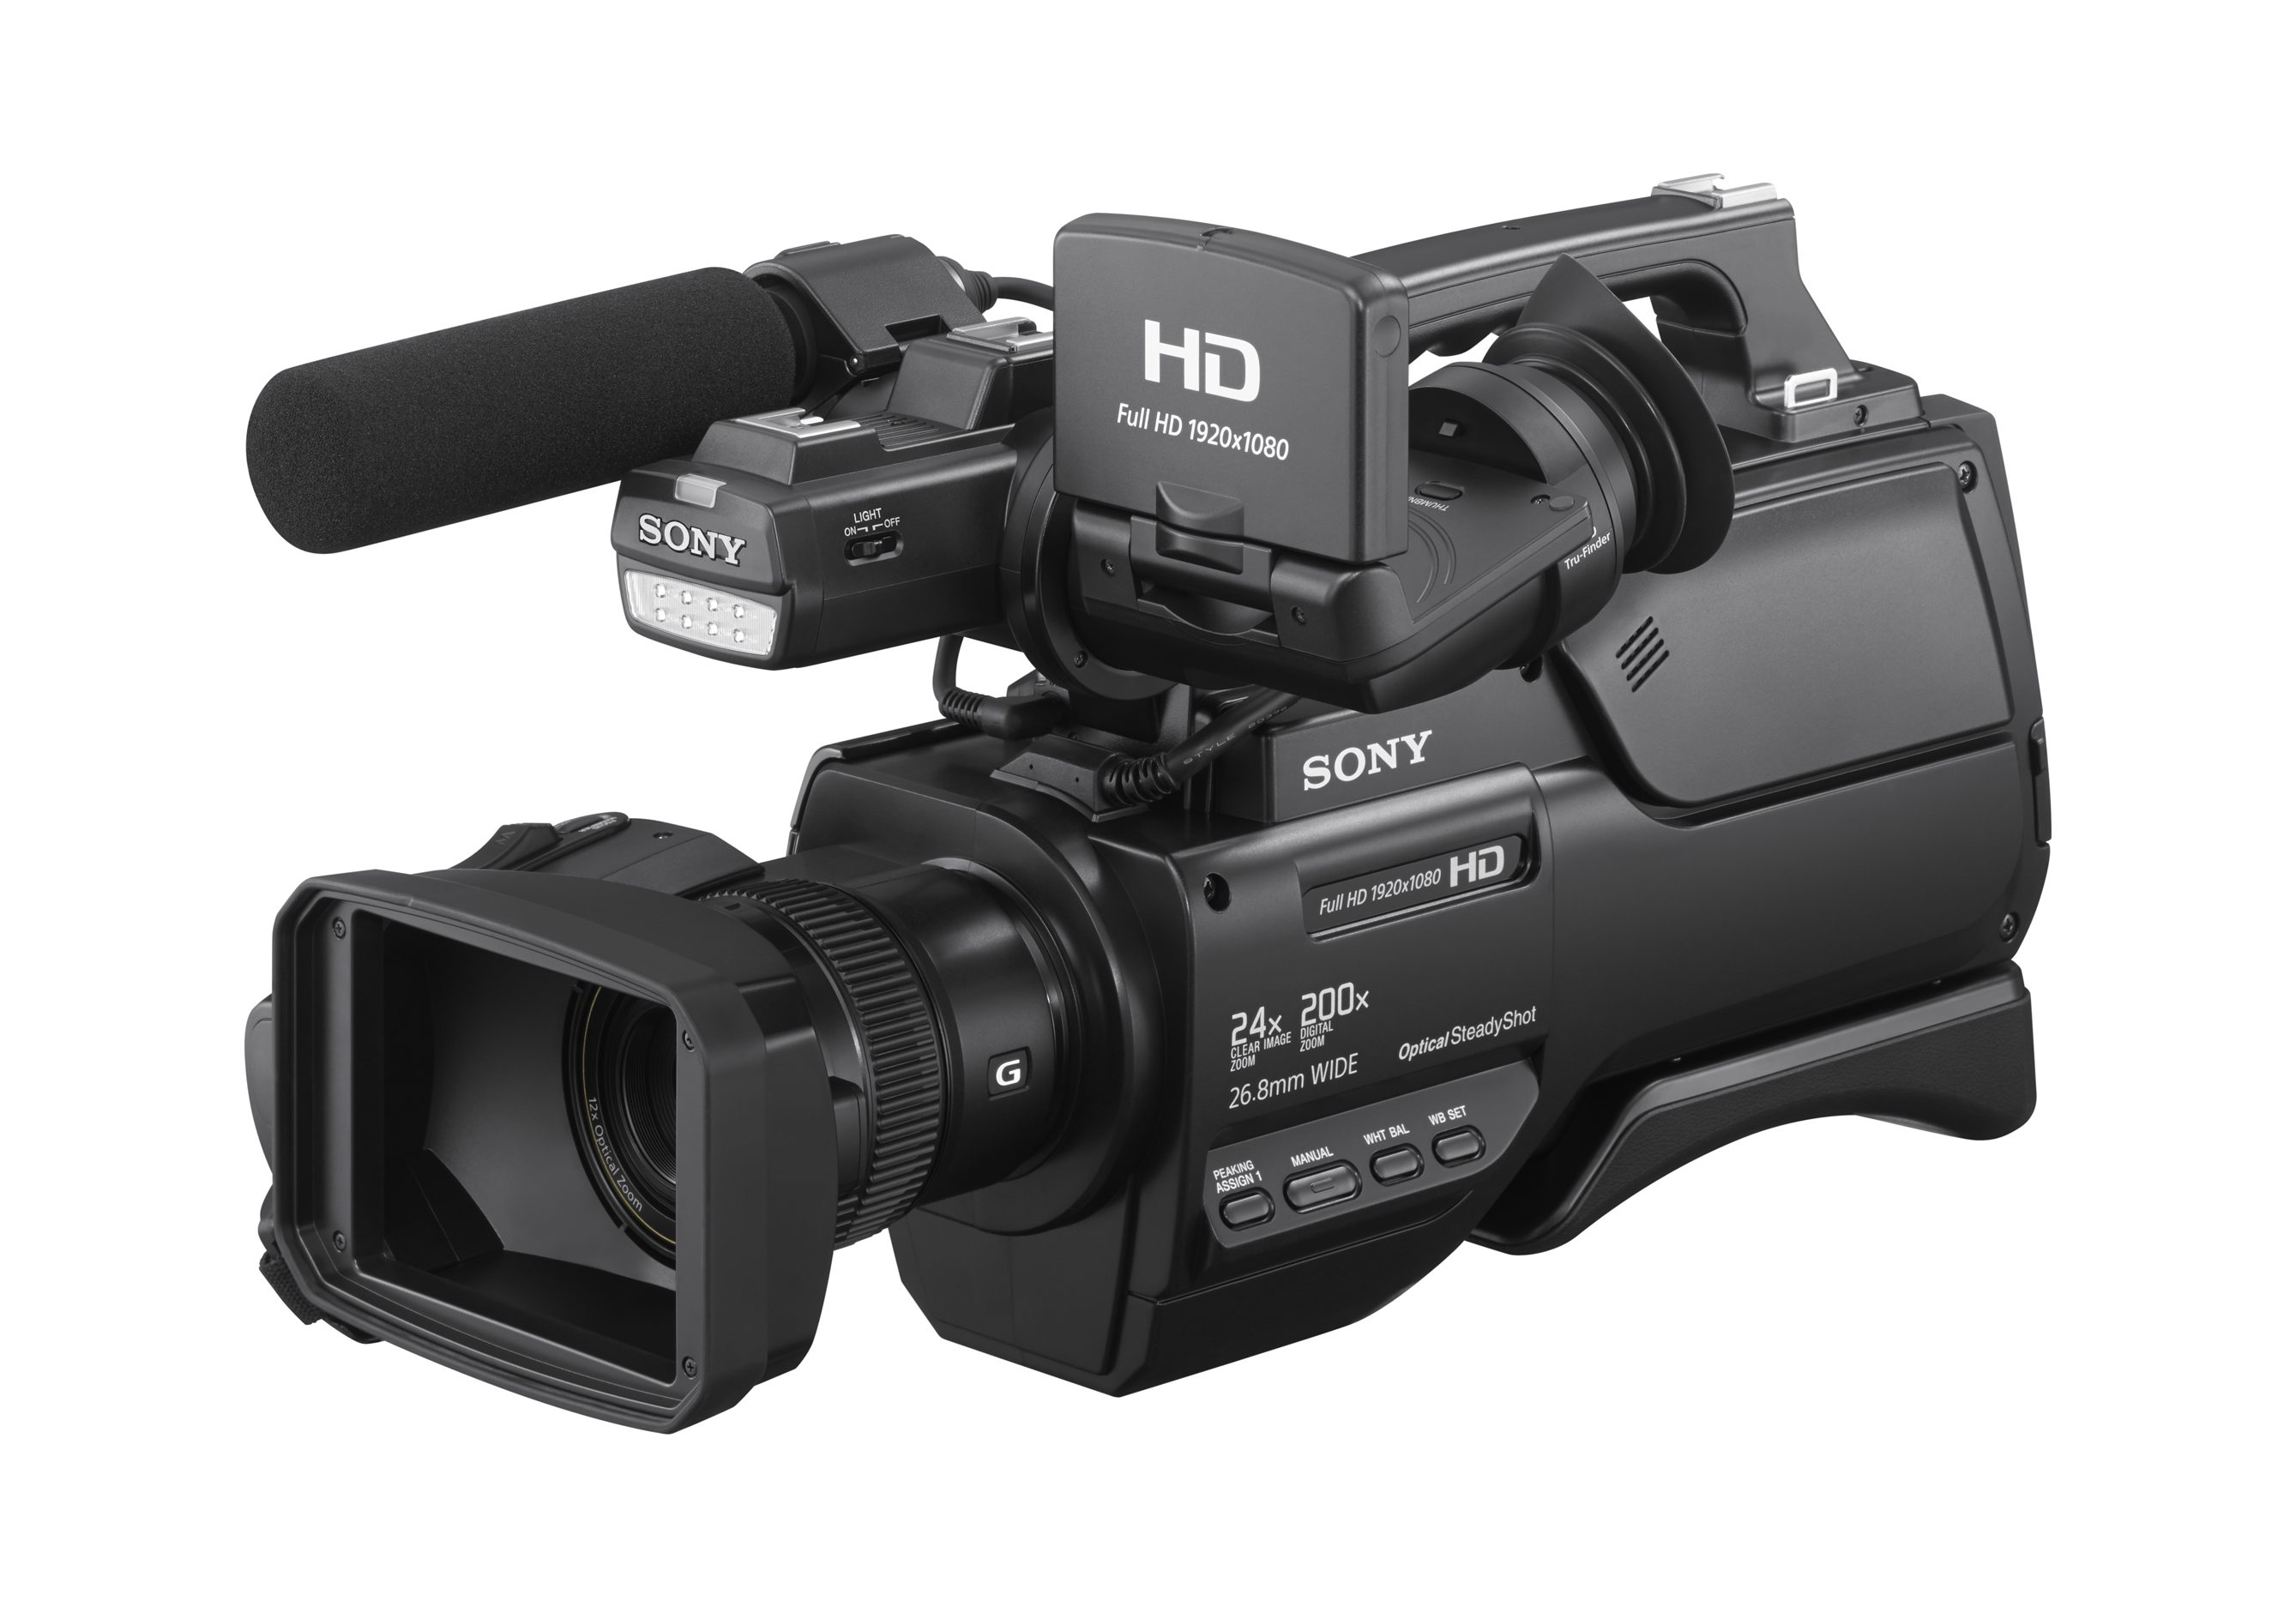 HRX MC2500 from Sony